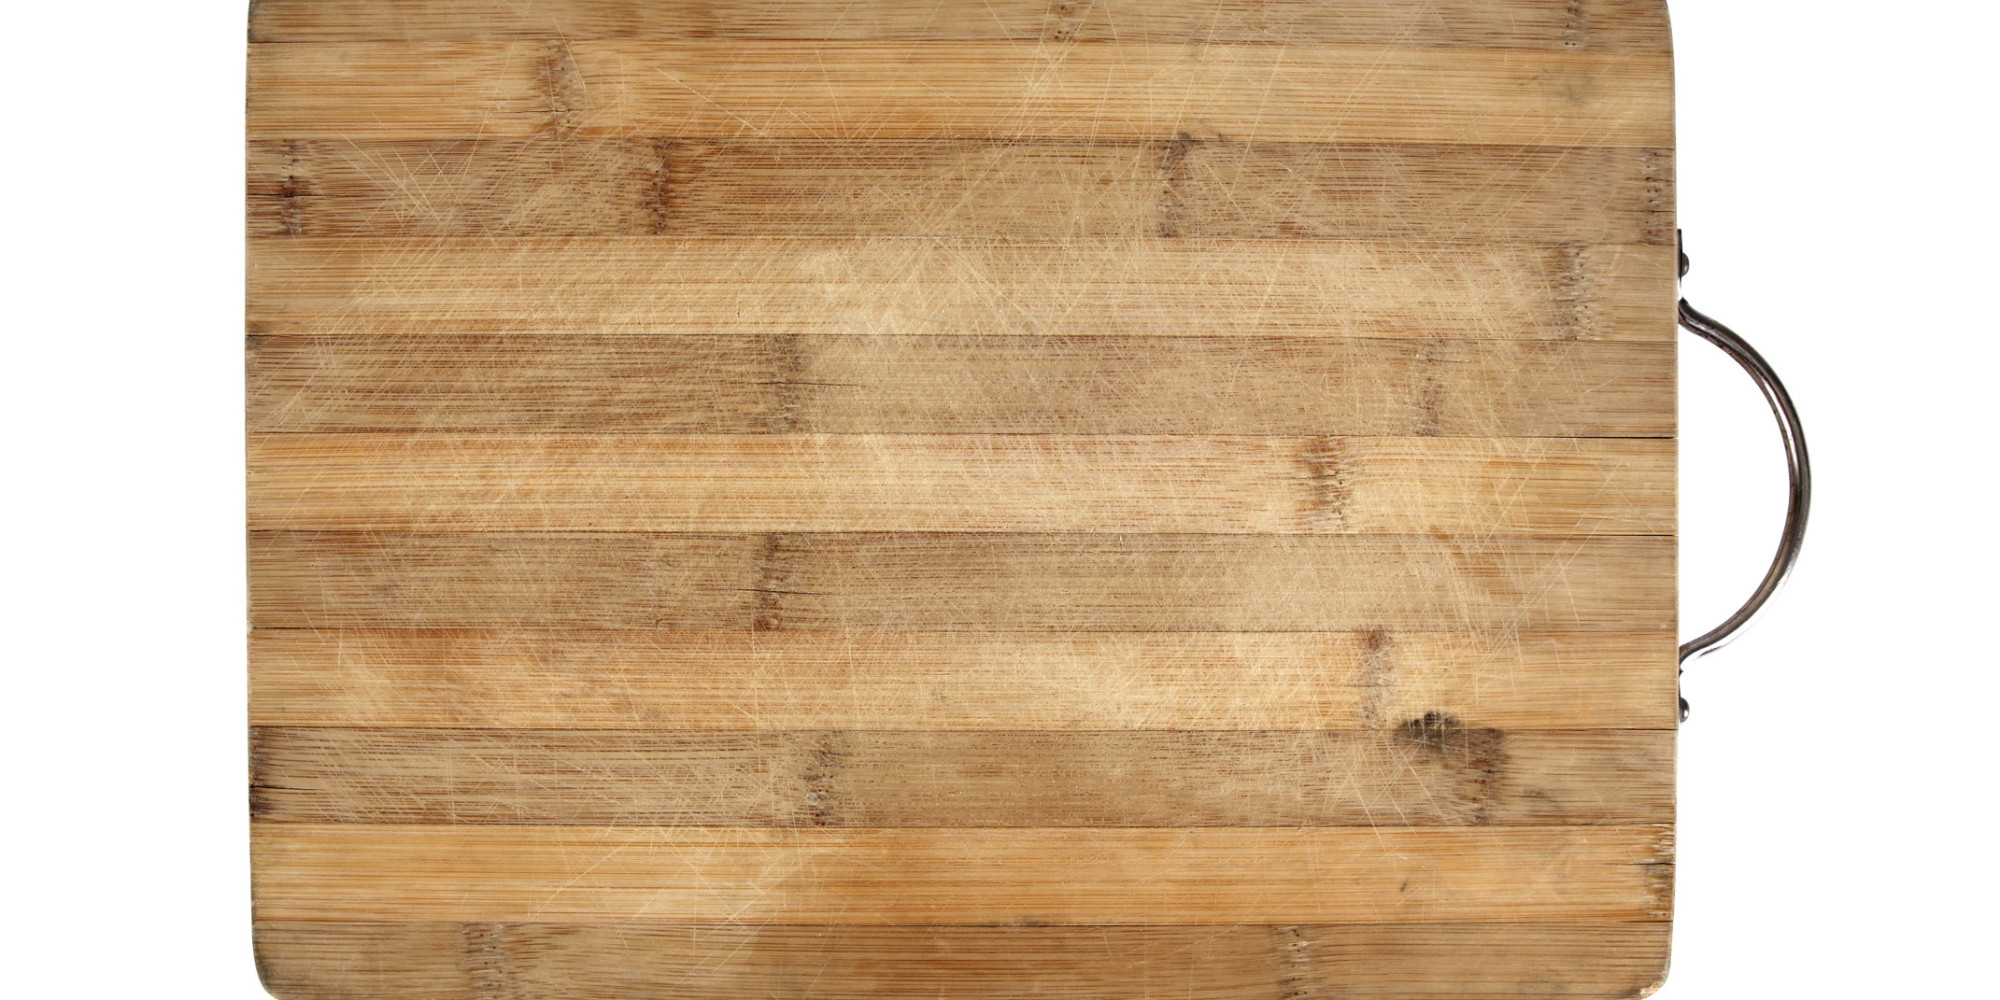 Different Types Of Cutting Boards Wood Or Plastic Cutting Boards Which Is Better Huffpost